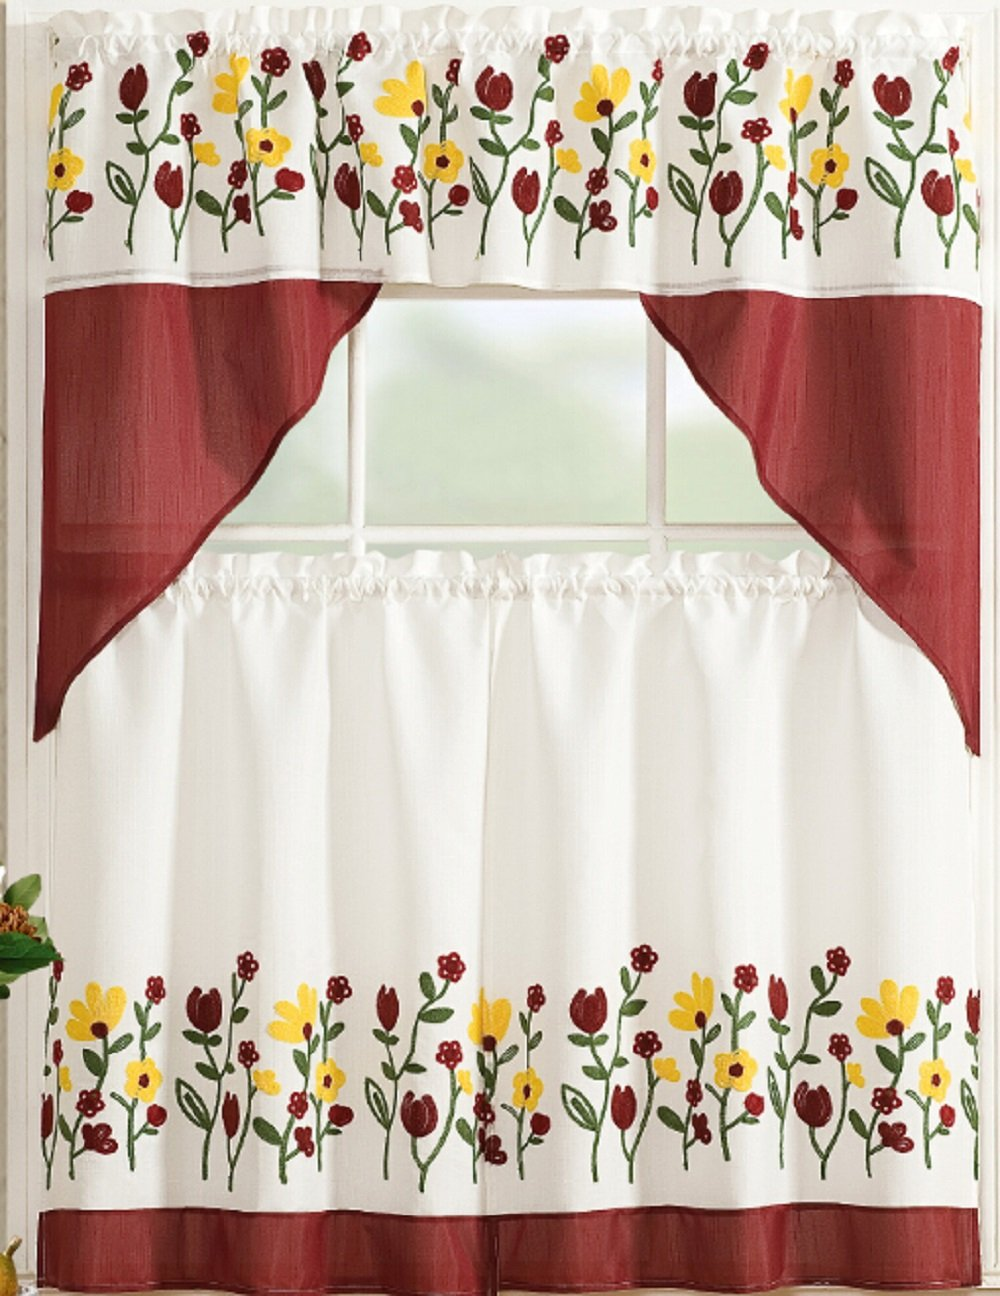 All American Collection Modern 3pc Kitchen Curtain Set with Swag Valance (Spring Flowers Burgundy)